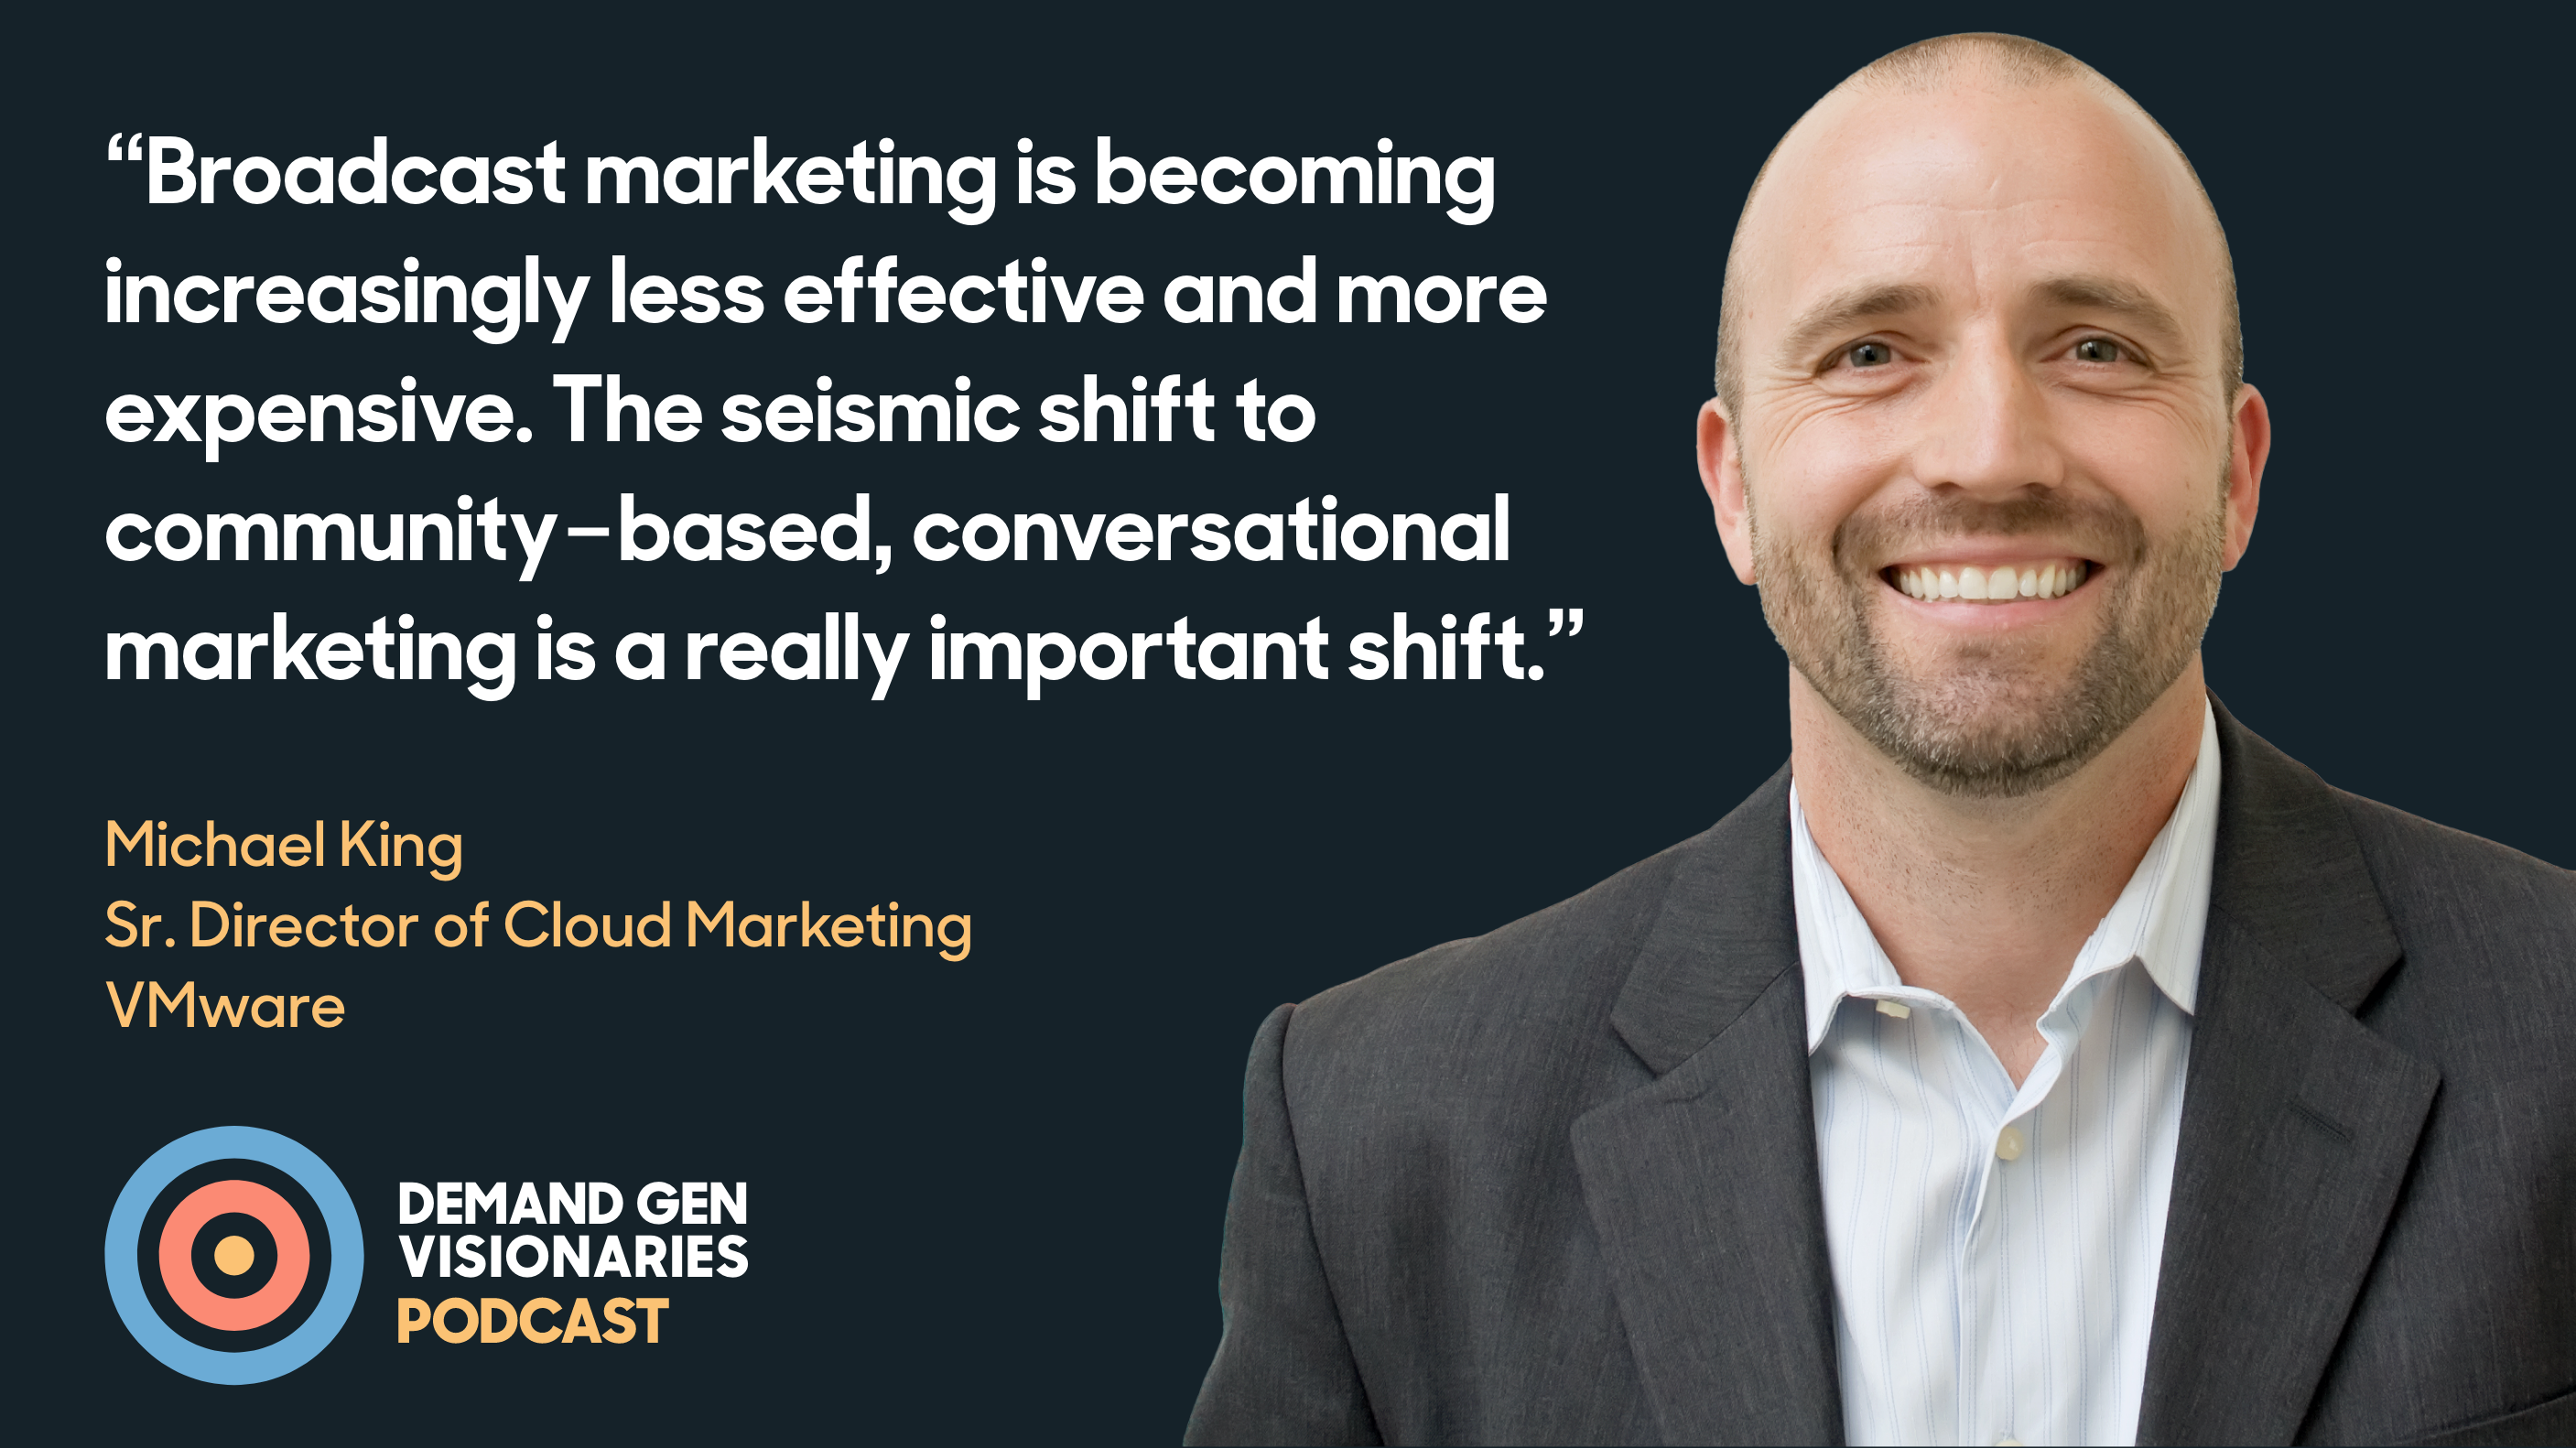 Michael King, Sr. Director of Cloud Marketing at VMware, joins the Demand Gen Visionaries podcast